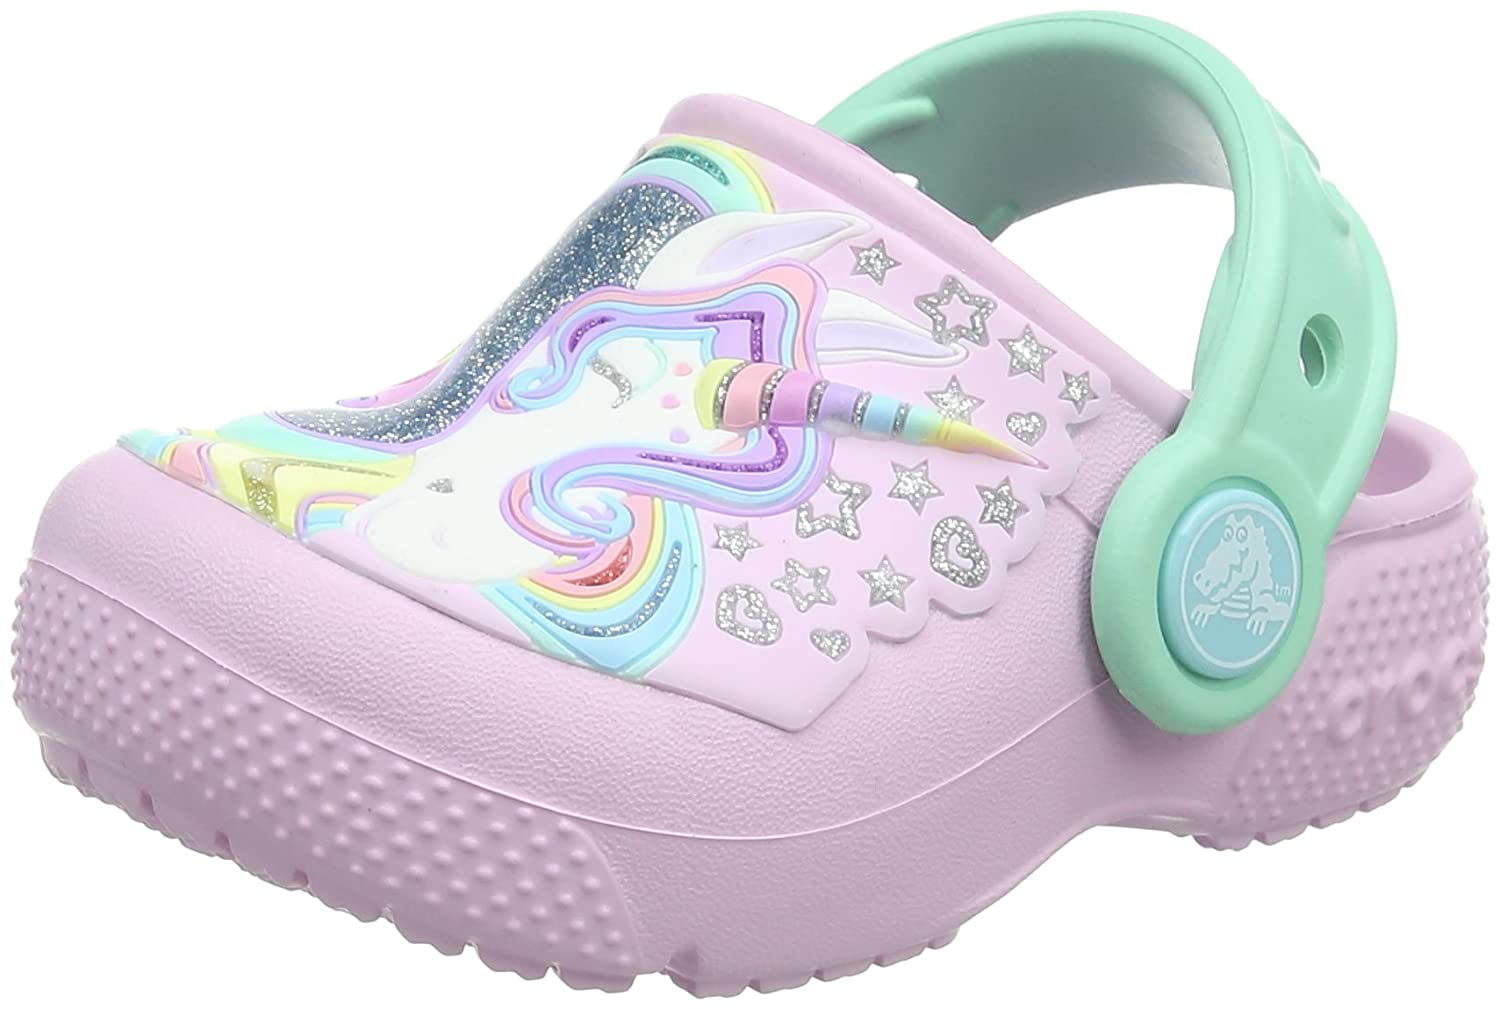 Crocs Fun Lab Clog Kids, Sabots Mixte Enfant